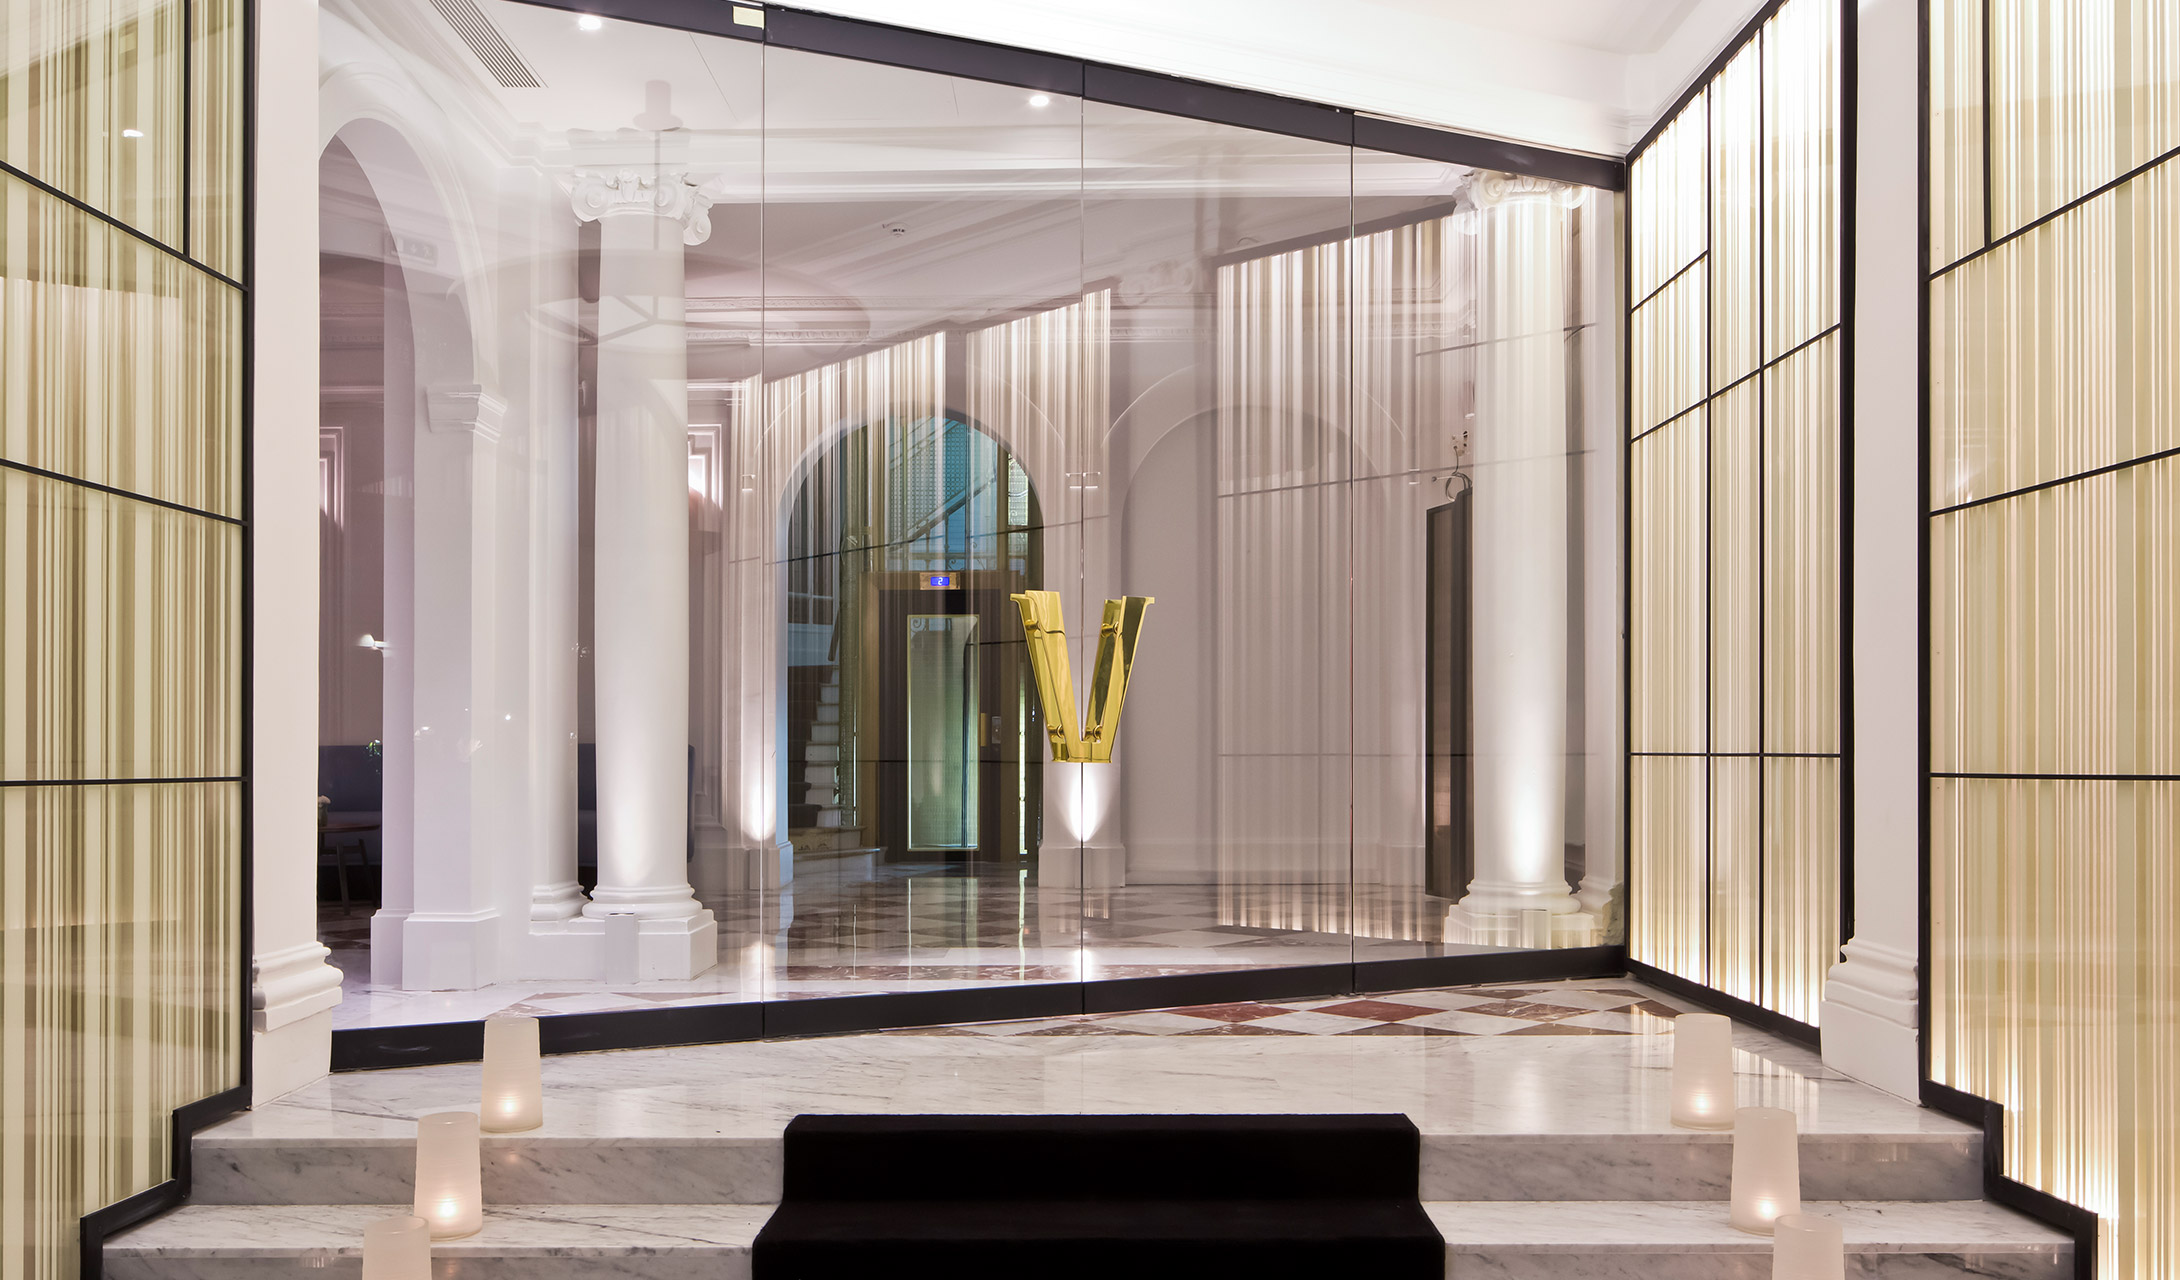 Hotel vernet champs elys es paris france design hotels for Design hotel paris 11